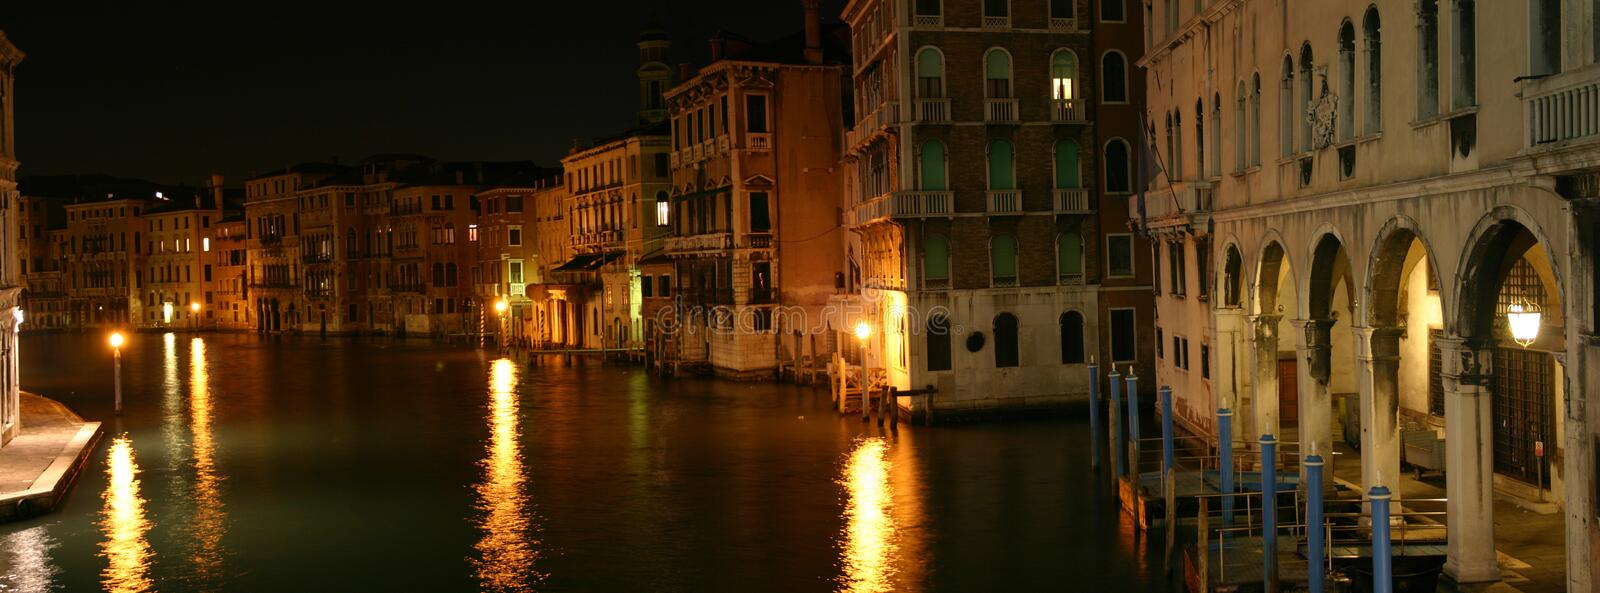 One night in Venice. royalty free stock image